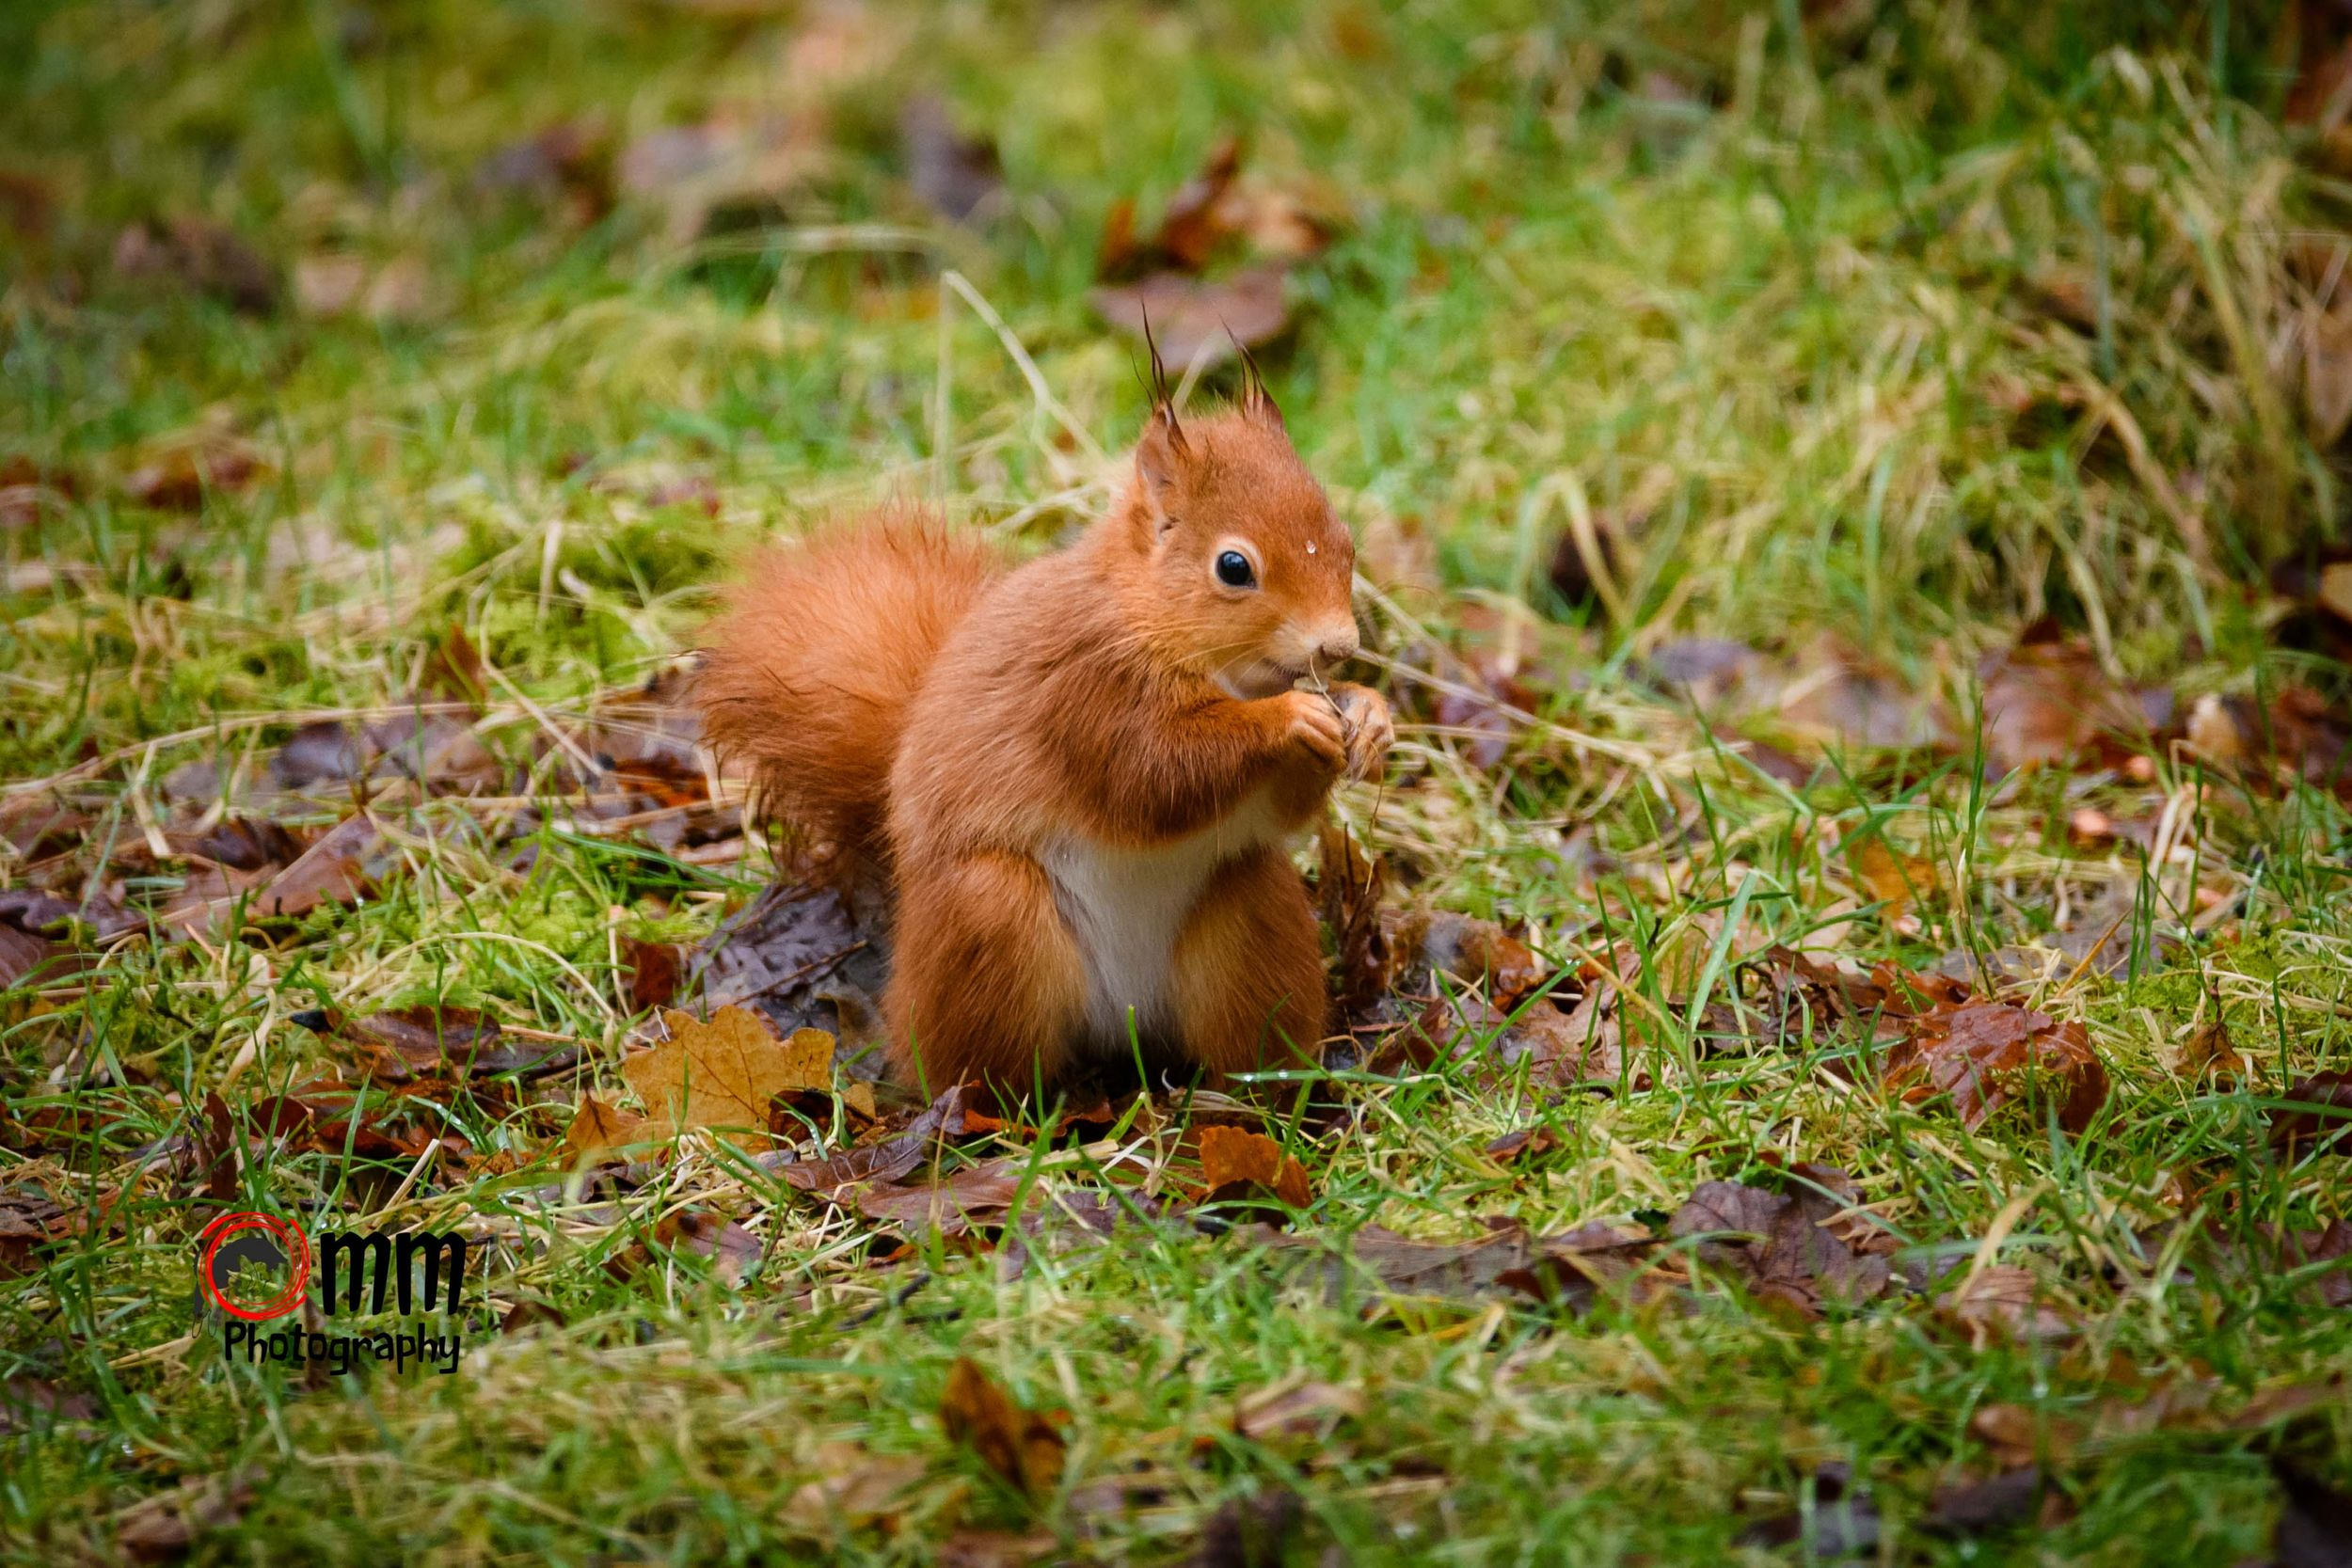 Glasgow event photographer, Glasgow wildlife photographer